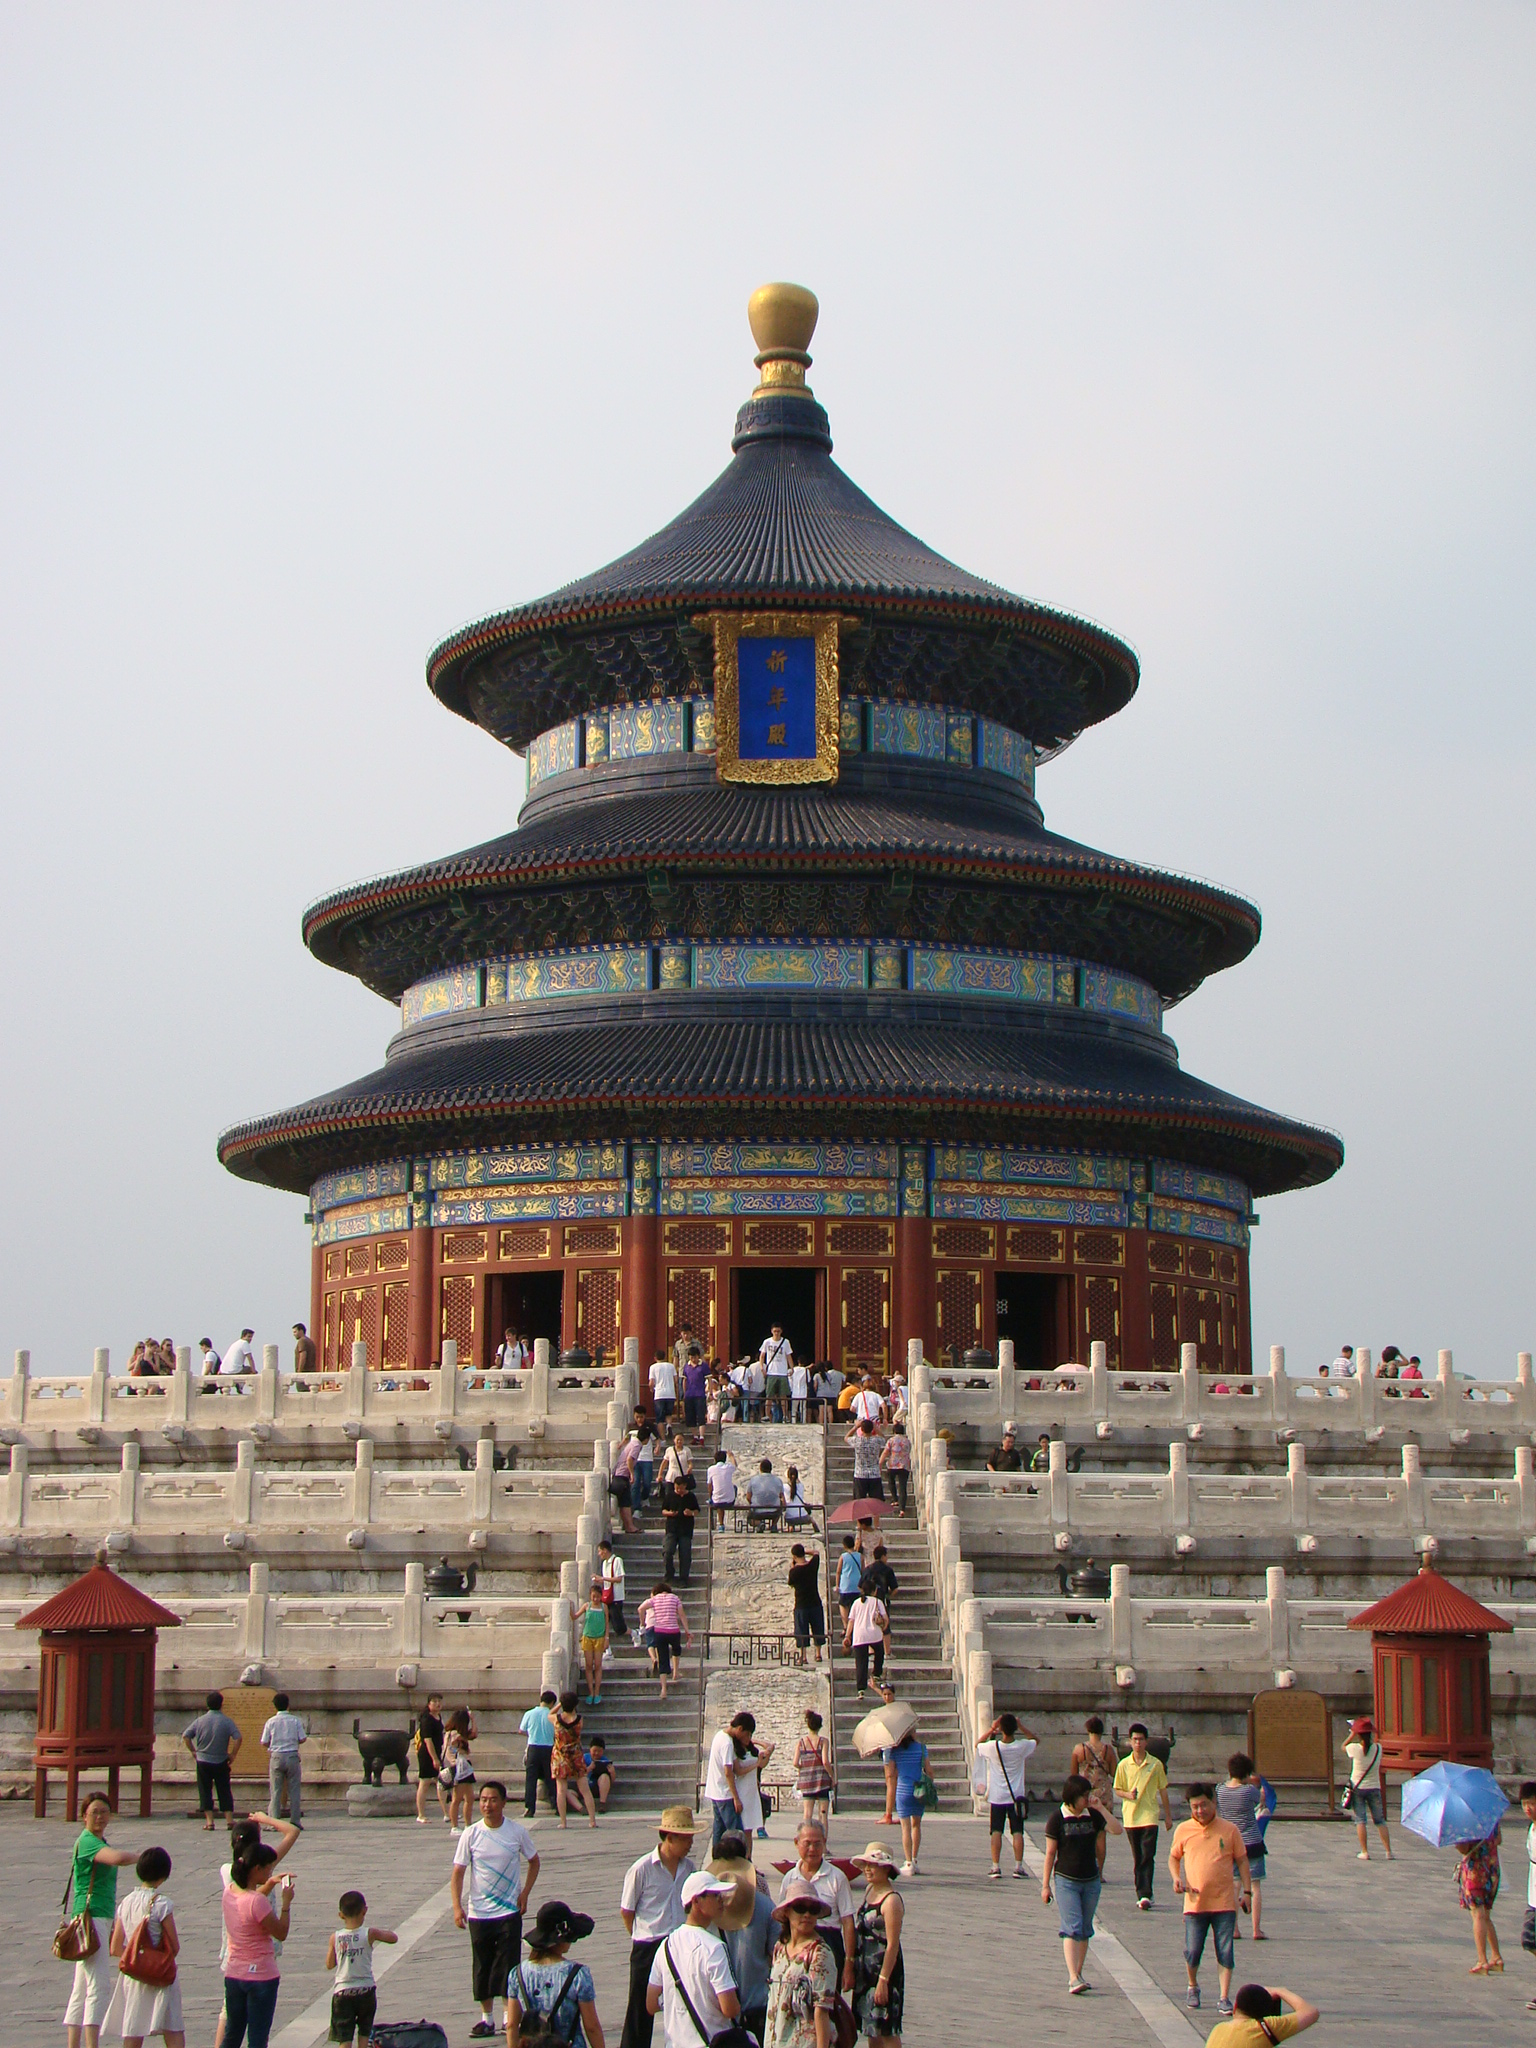 Temple of Heaven where they Sacrificed People for Good Harvests